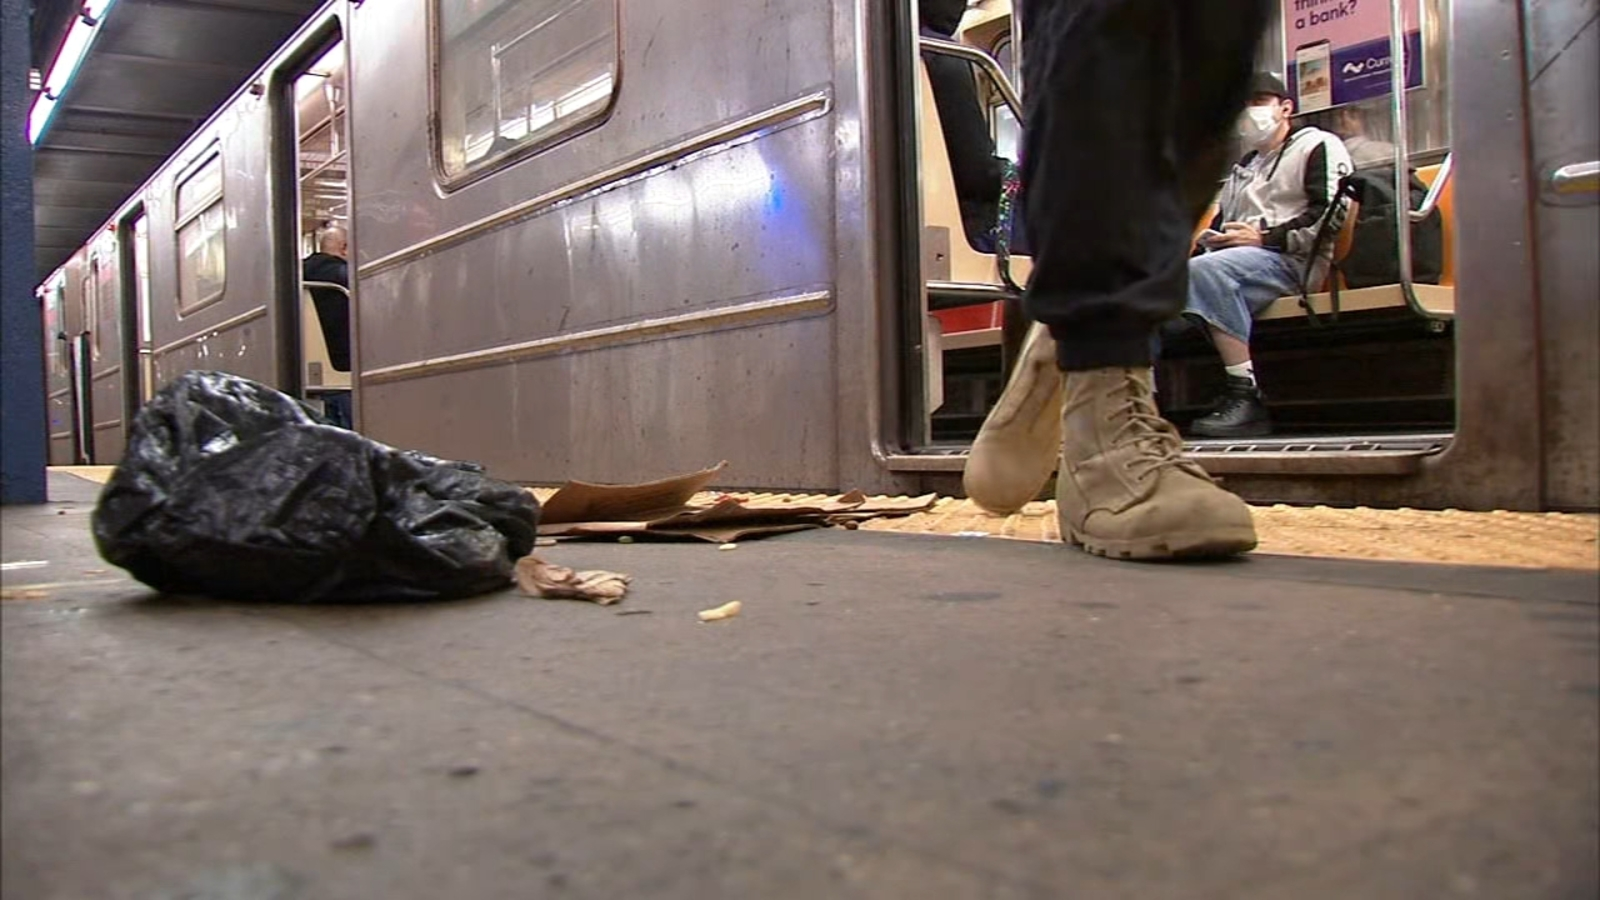 Reports of filthy NYC subway cars further degrade mass transit conditions